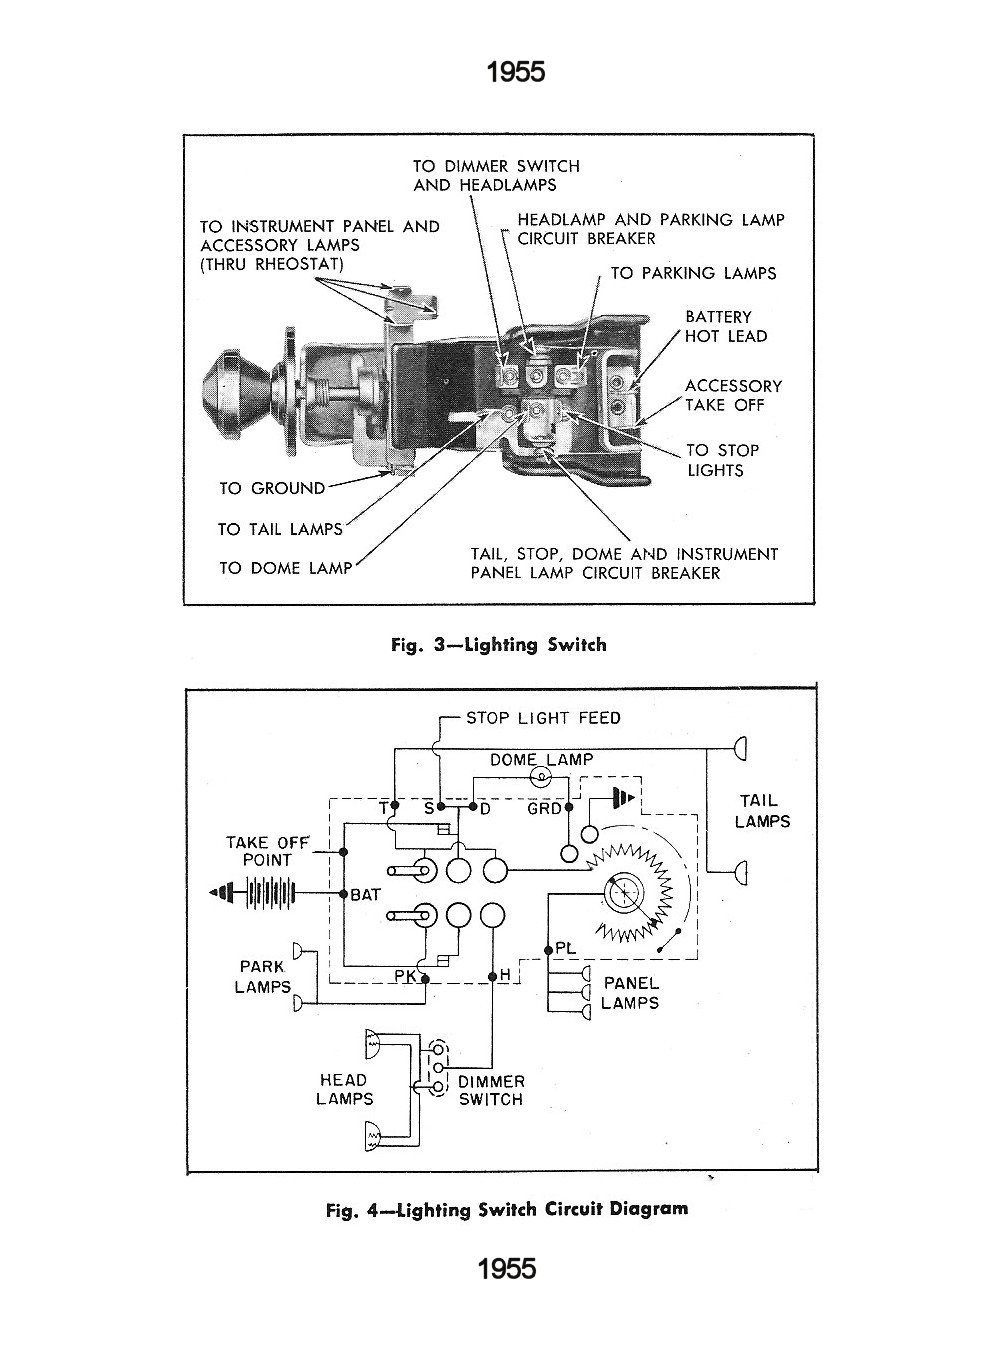 lighting switch circuit diagram for the 1955 chevrolet truck meta  1958 chevy truck wiring diagram #12